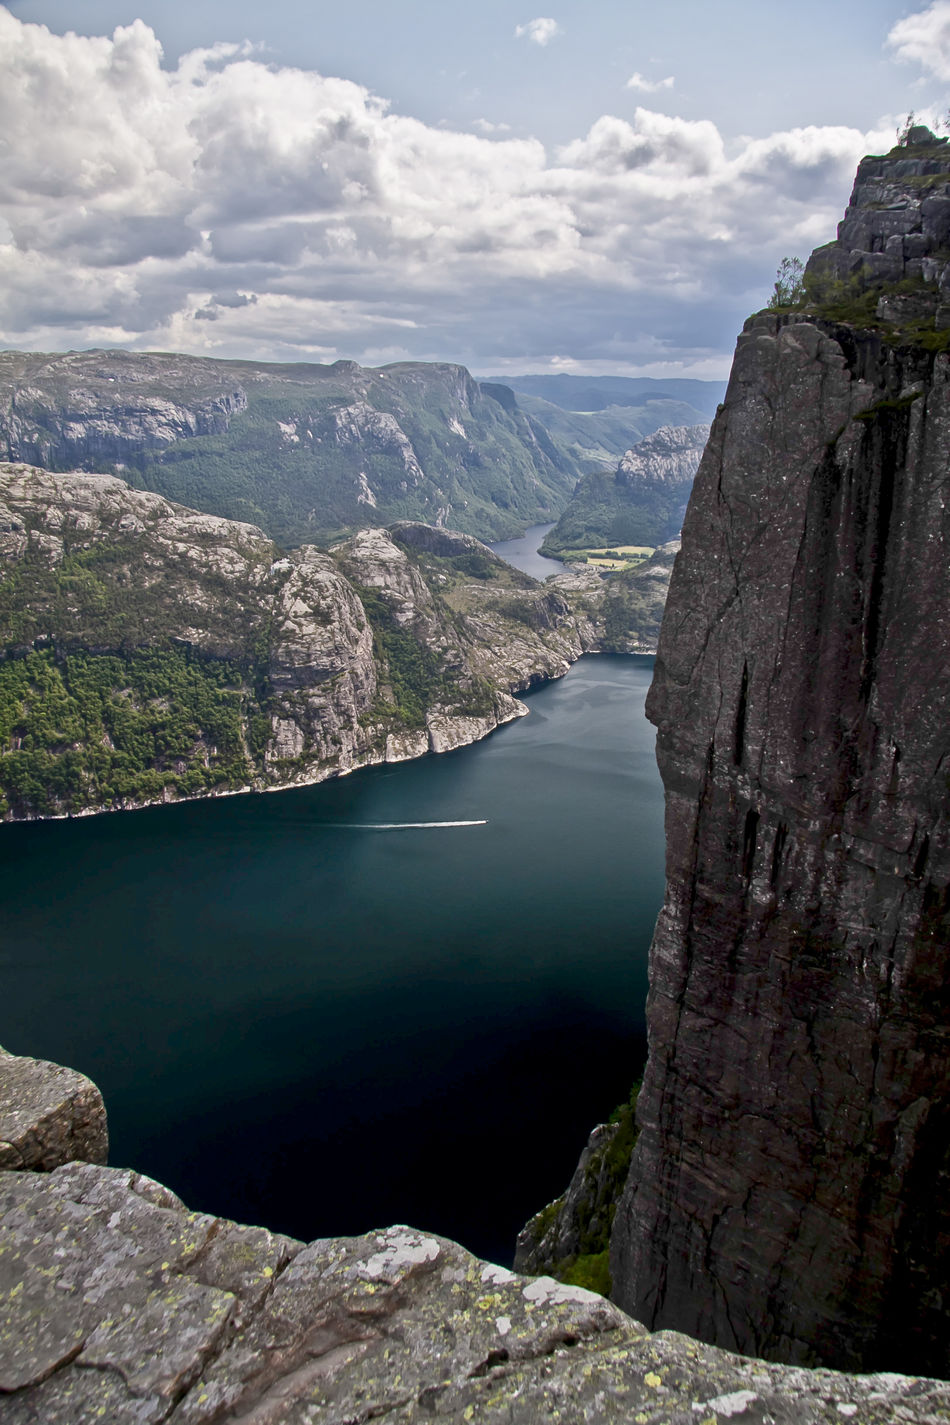 Beauty In Nature Landscape Mountain Mountain Range Nature Noruega Norway Outdoors Prekestolen Rock Formation Tranquil Scene Water